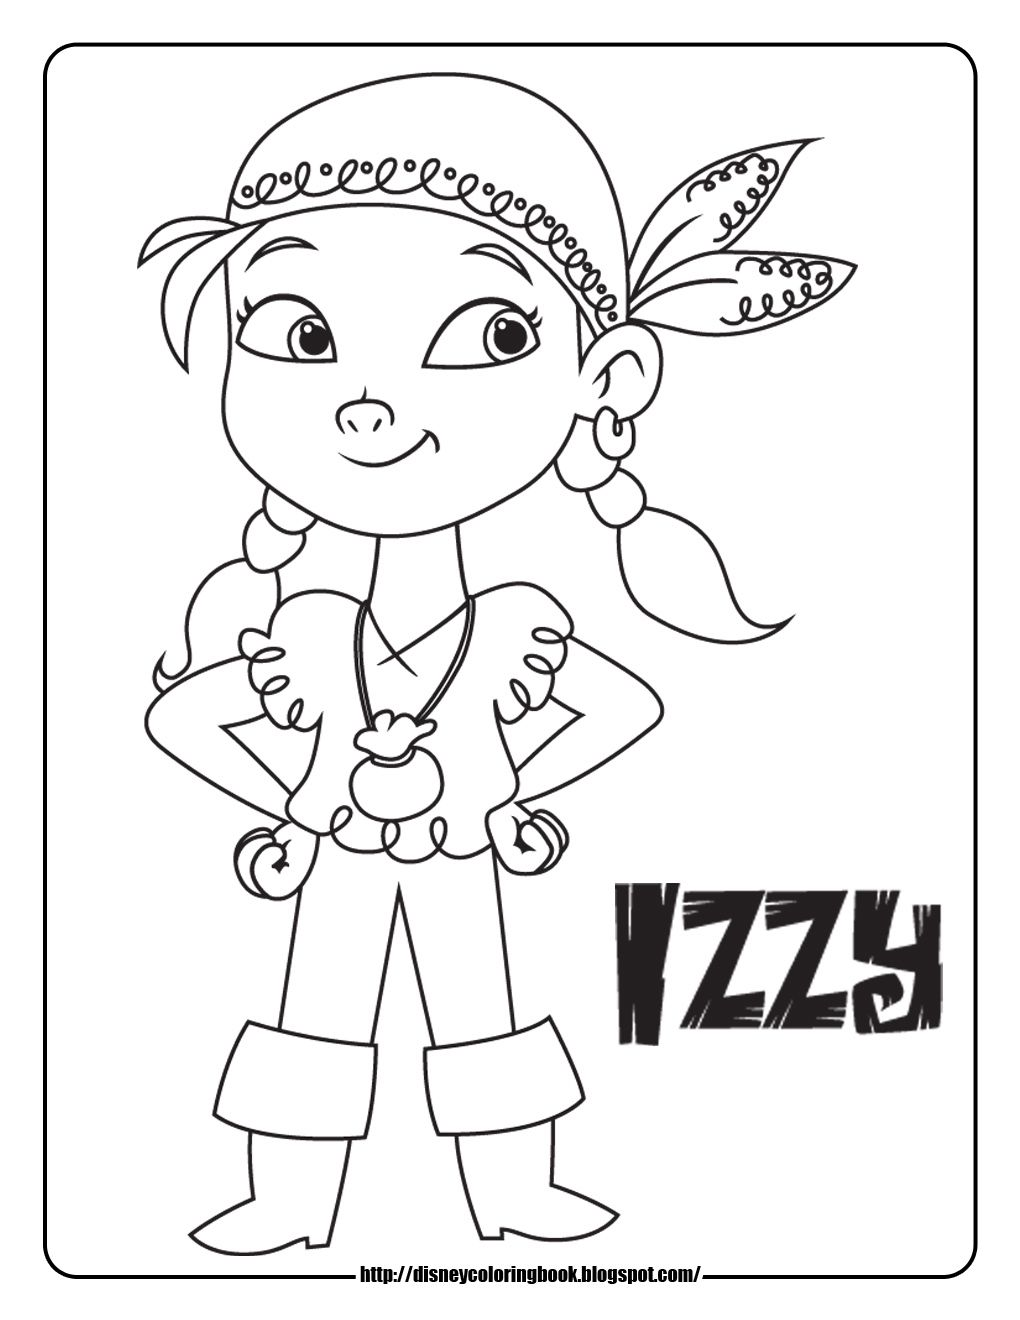 coloring sheets for june disney coloring pages and sheets for